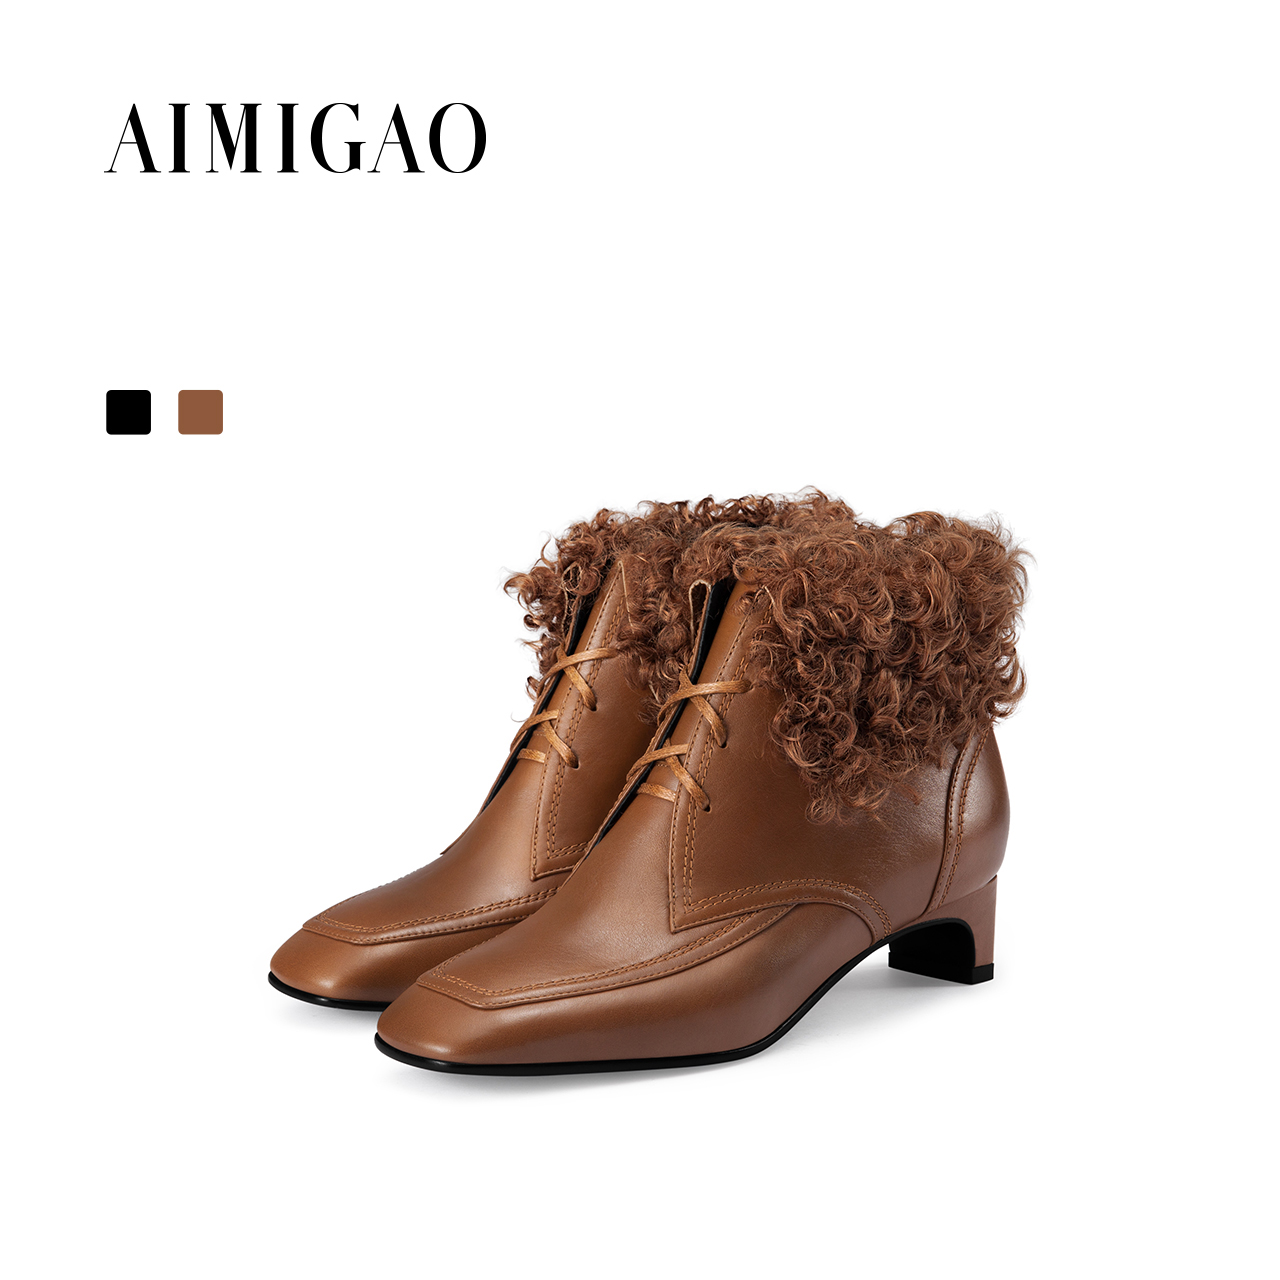 AIMIGAO square toe Fashion Lace-up women ankle boots women leather thick heel wool boots luxurious 2017 autumn winter new цены онлайн